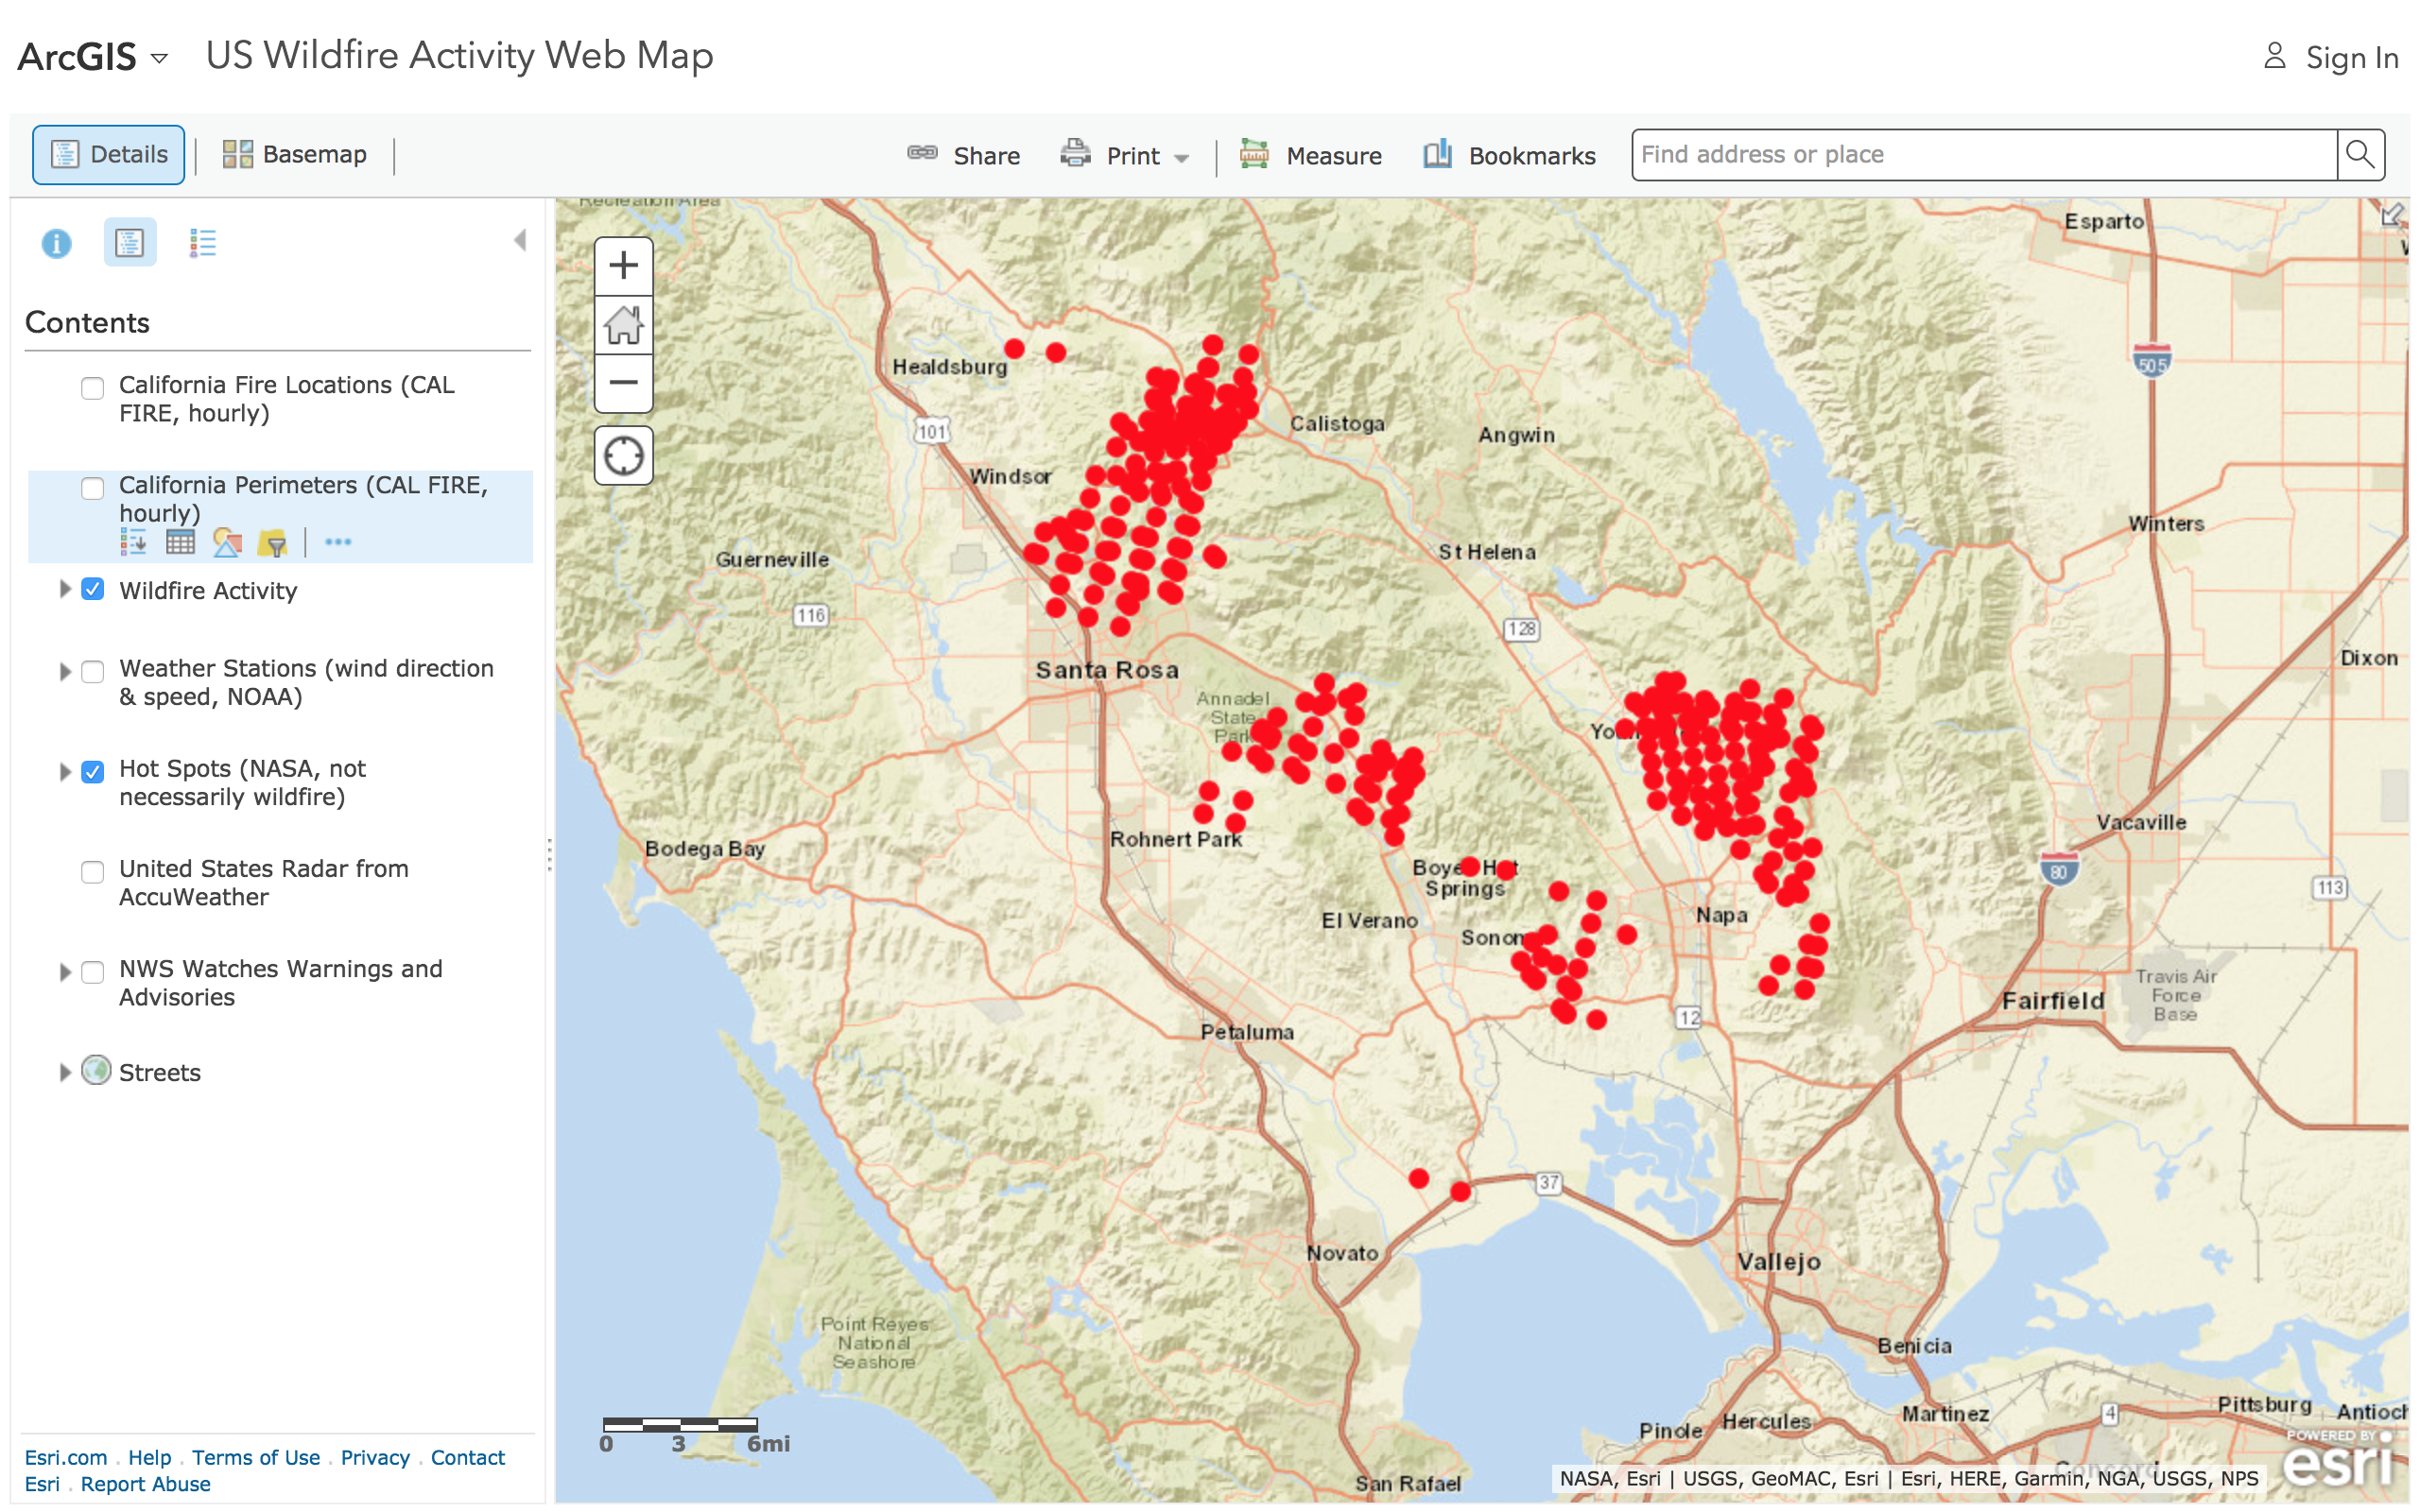 In Search Of Fire Maps Greeninfo Network - Us-wildfire-activity-map